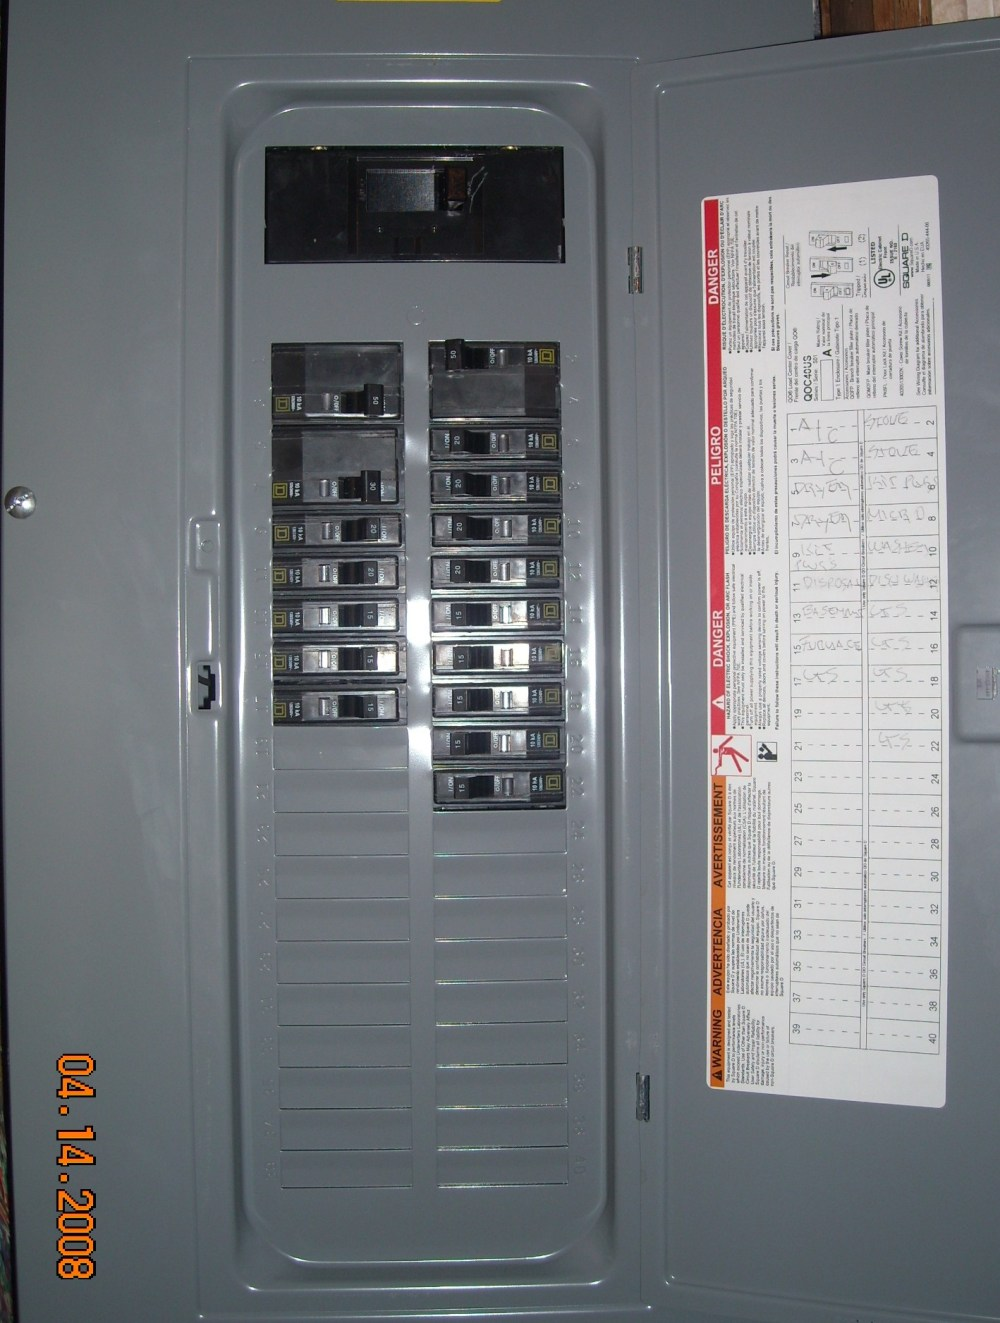 medium resolution of fuse box home insurance wiring diagram fuse box homebase fuse box in a home